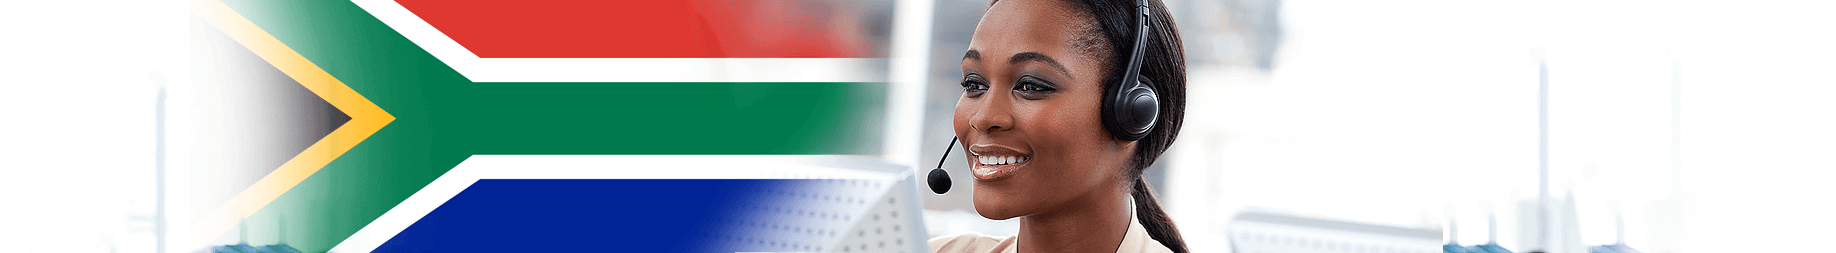 South Africa Call Centres | South African Call Centres | Outsourcing | Call Centres in South Africa | Multilingual Call Centres | Worldwide Call Centers | Customer Support